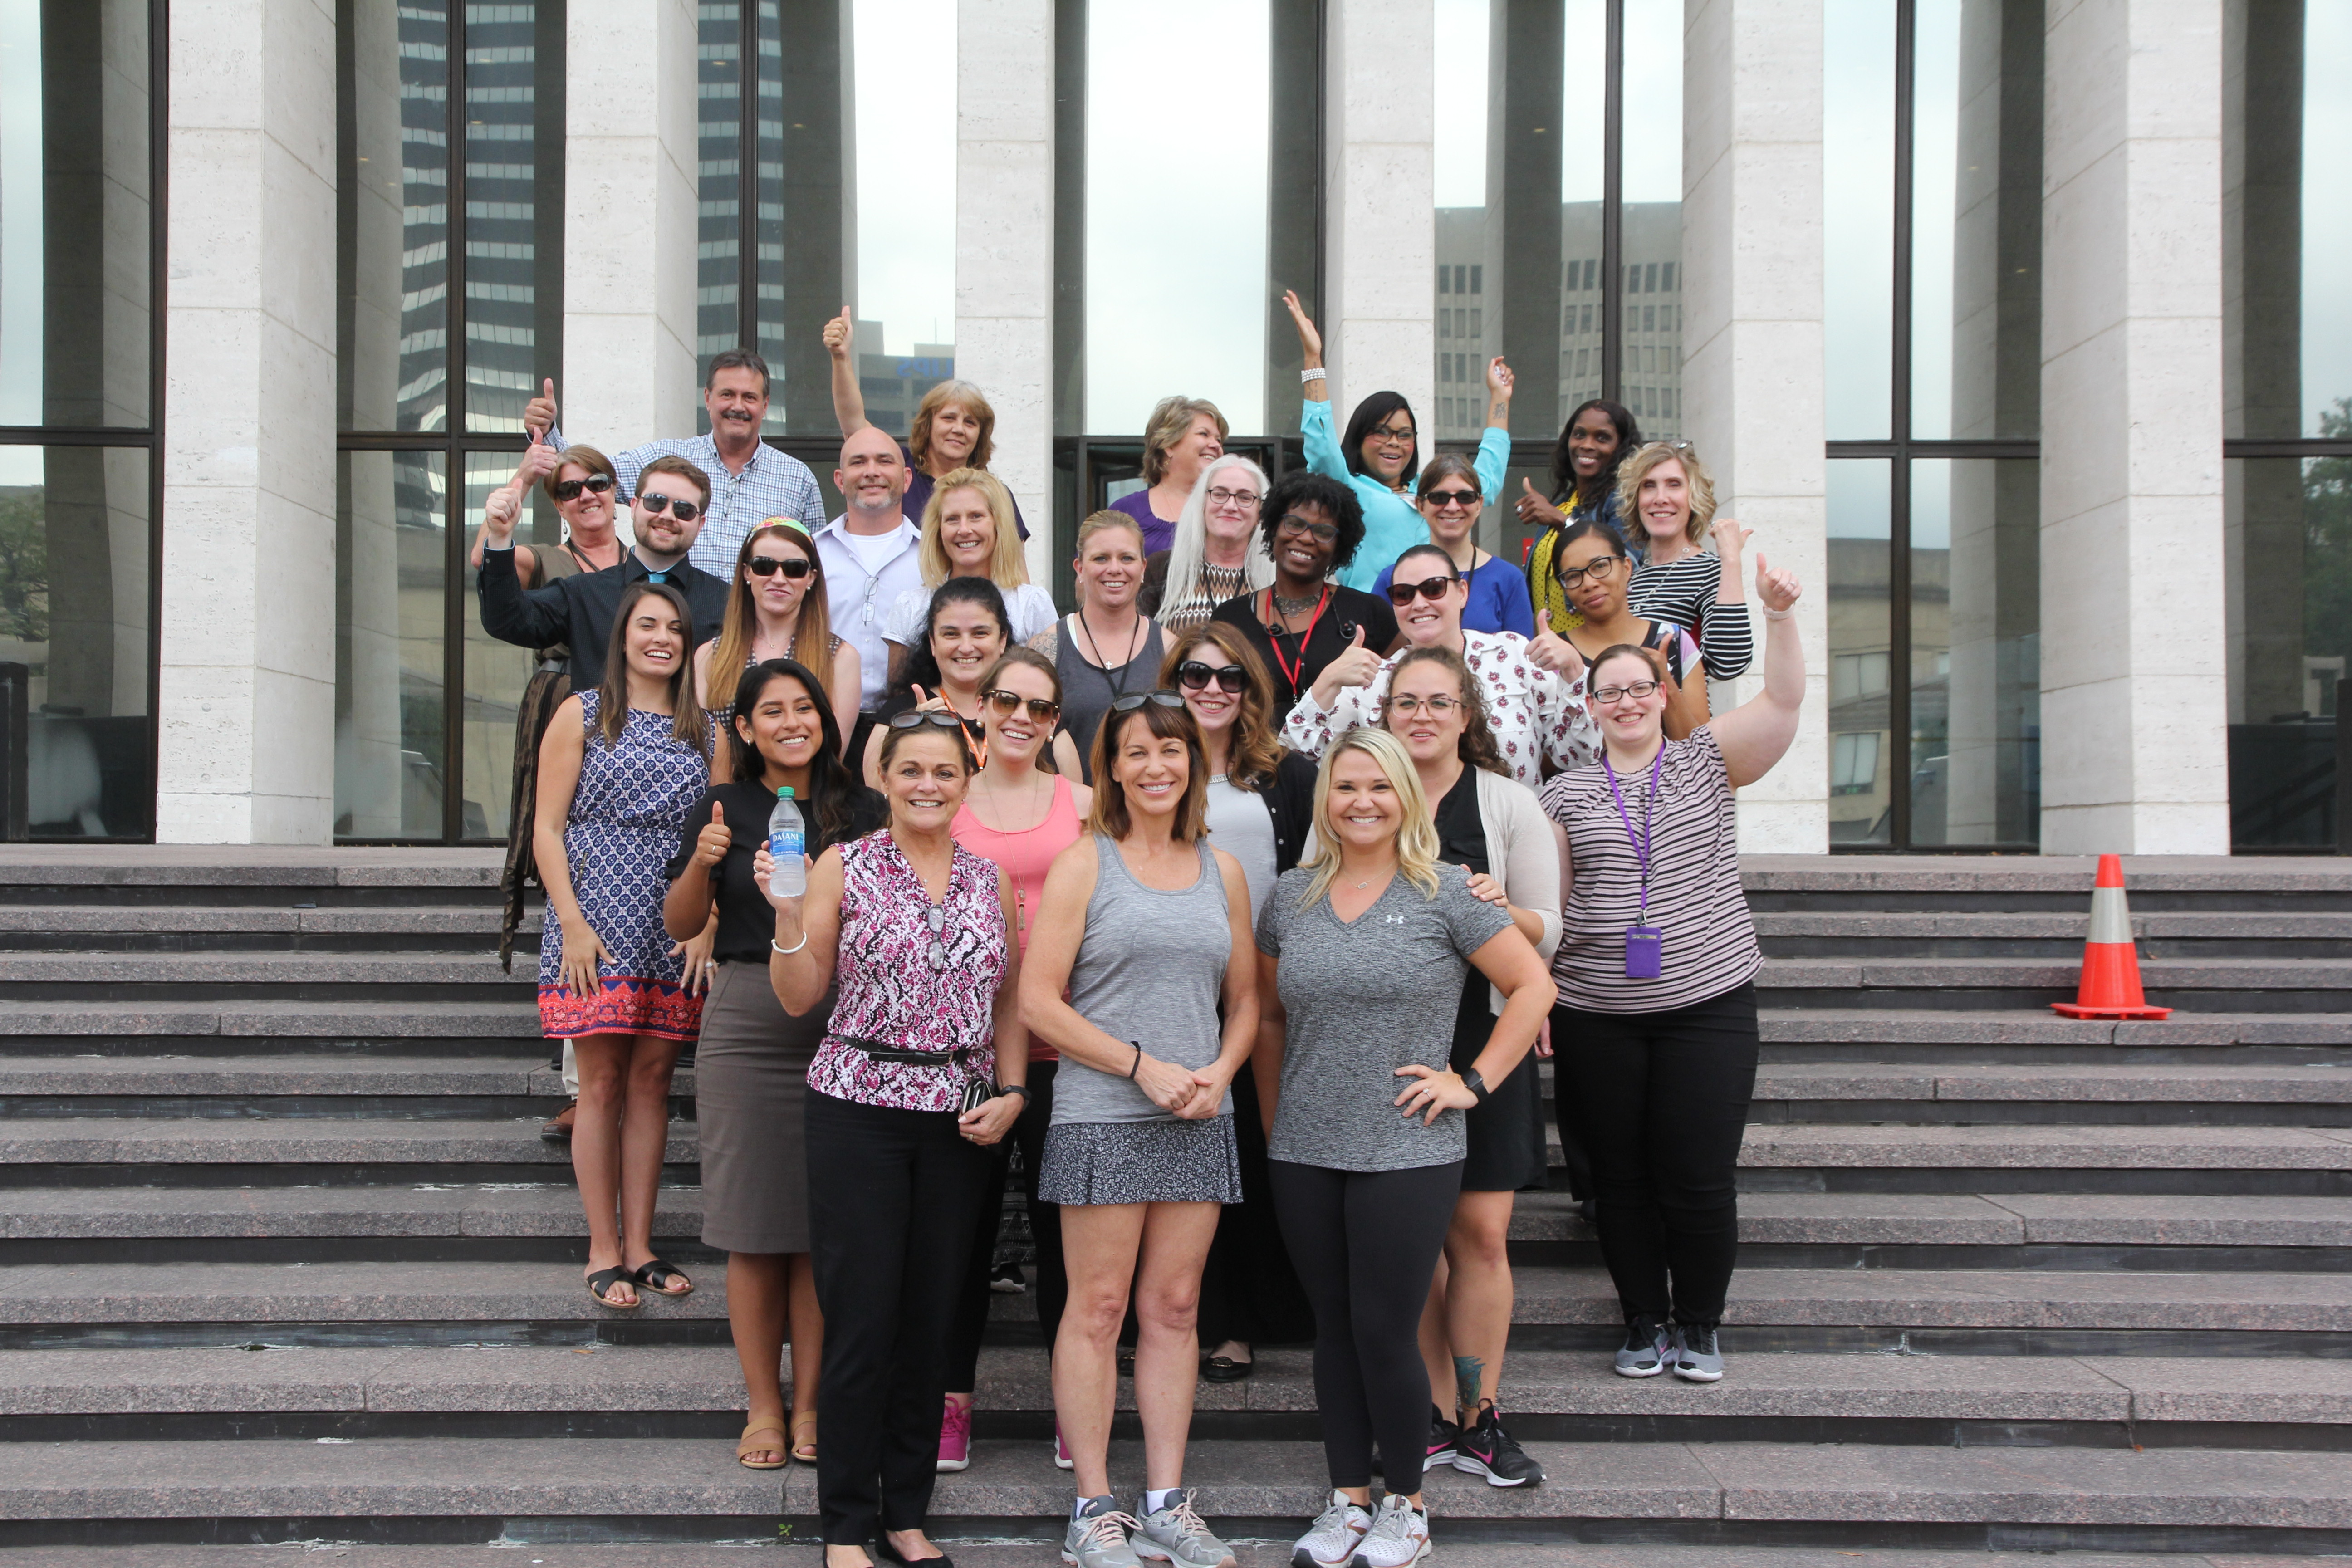 General Services' new DGS Cares Planning Team hosted a walk with Commissioner Branscom in recognition of Women's Health & Fitness Day. The entire group started and finished together, walking 1.3 miles in 30 minutes around downtown.